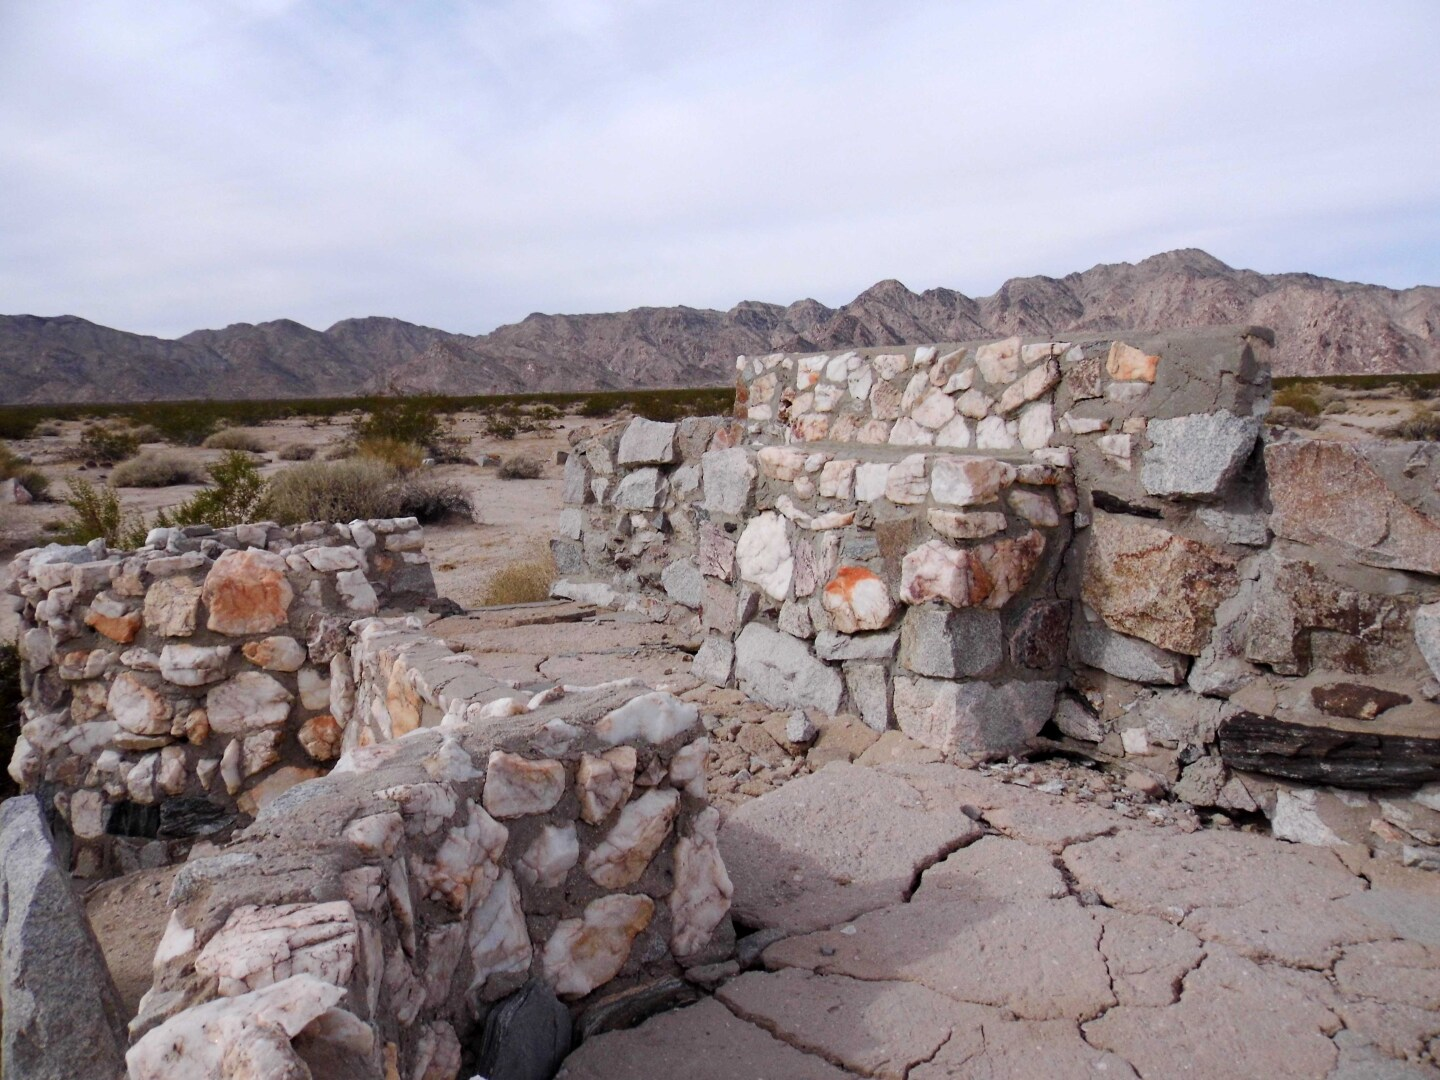 A Protestant altar at Camp Iron Mountain in the Mojave Trails National Monument.